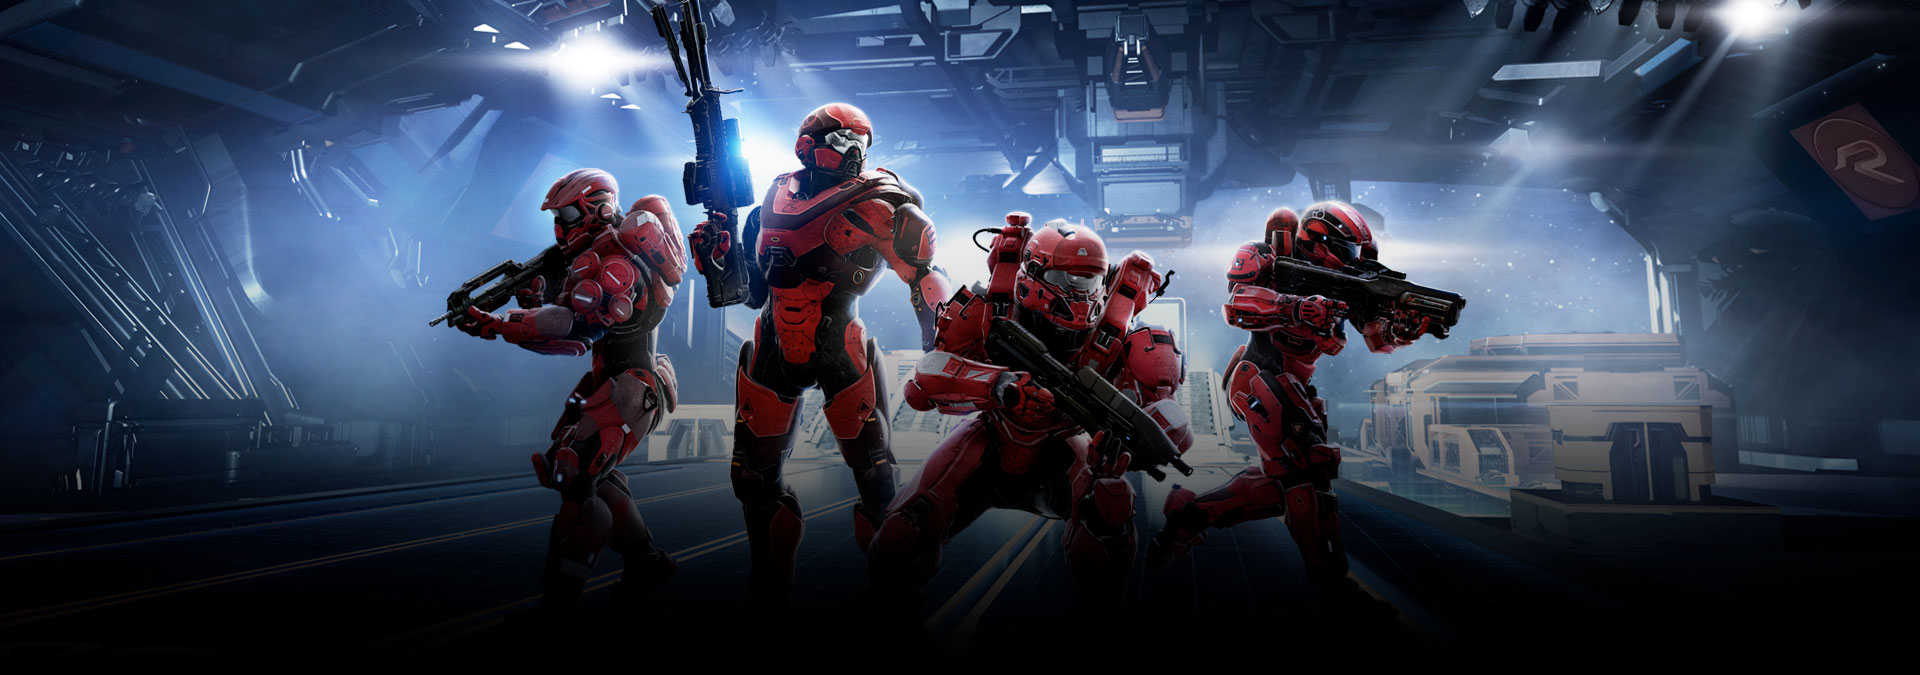 Halo 5 Guardians VGProfessional Review